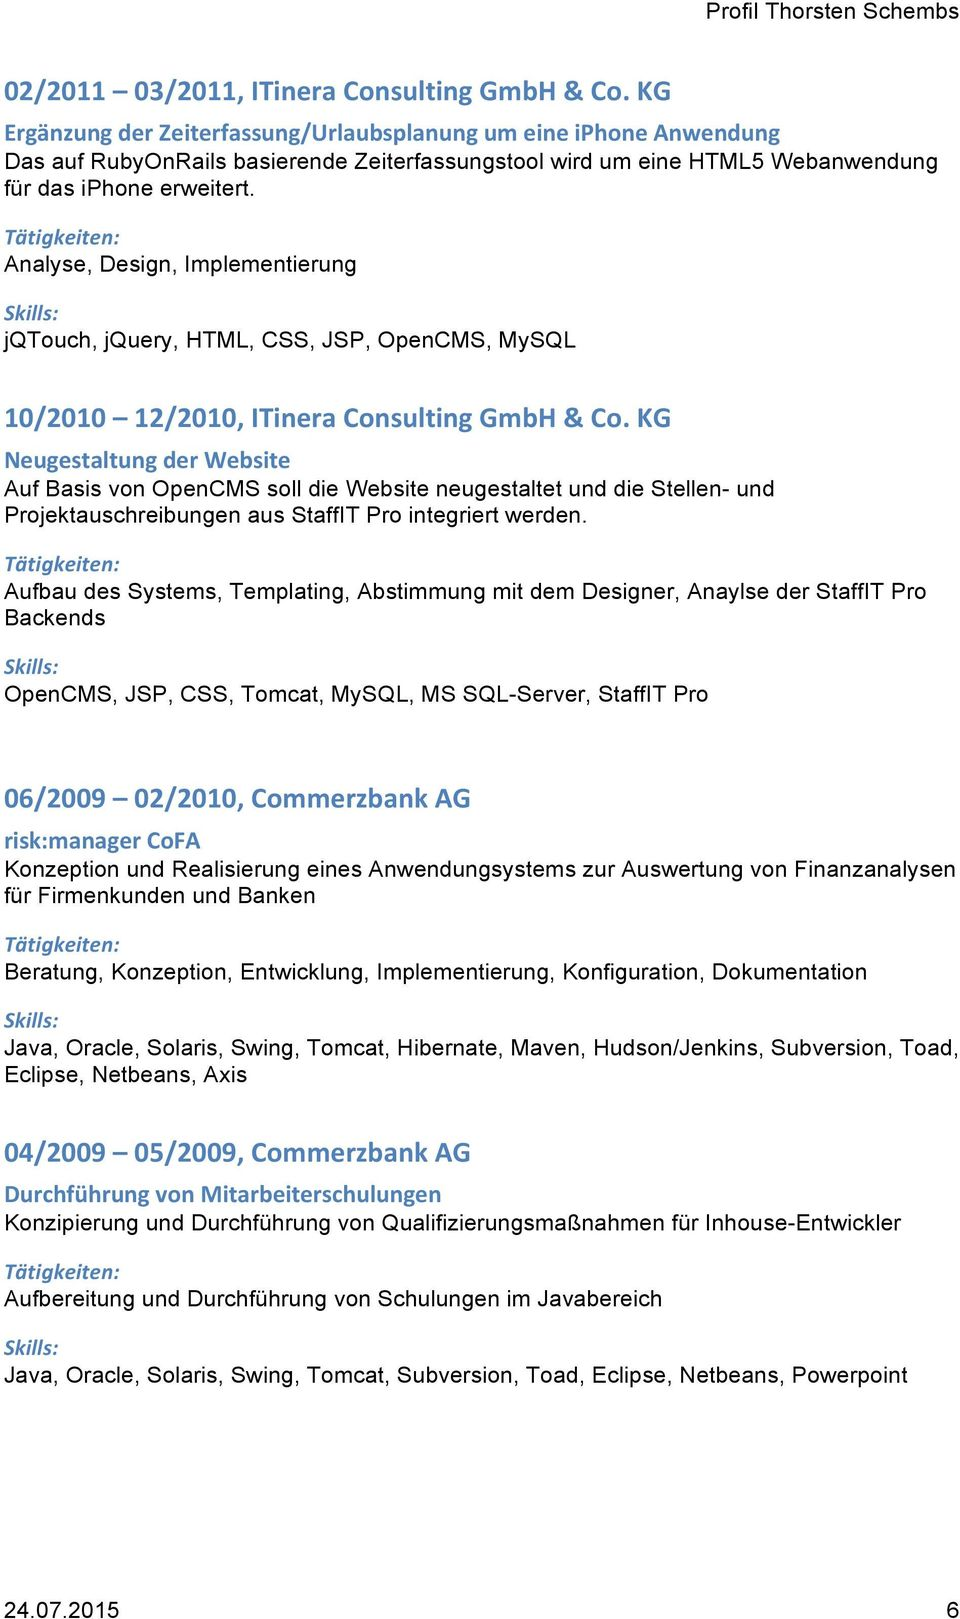 Analyse, Design, Implementierung jqtouch, jquery, HTML, CSS, JSP, OpenCMS, MySQL 10/2010 12/2010, ITinera Consulting GmbH & Co.